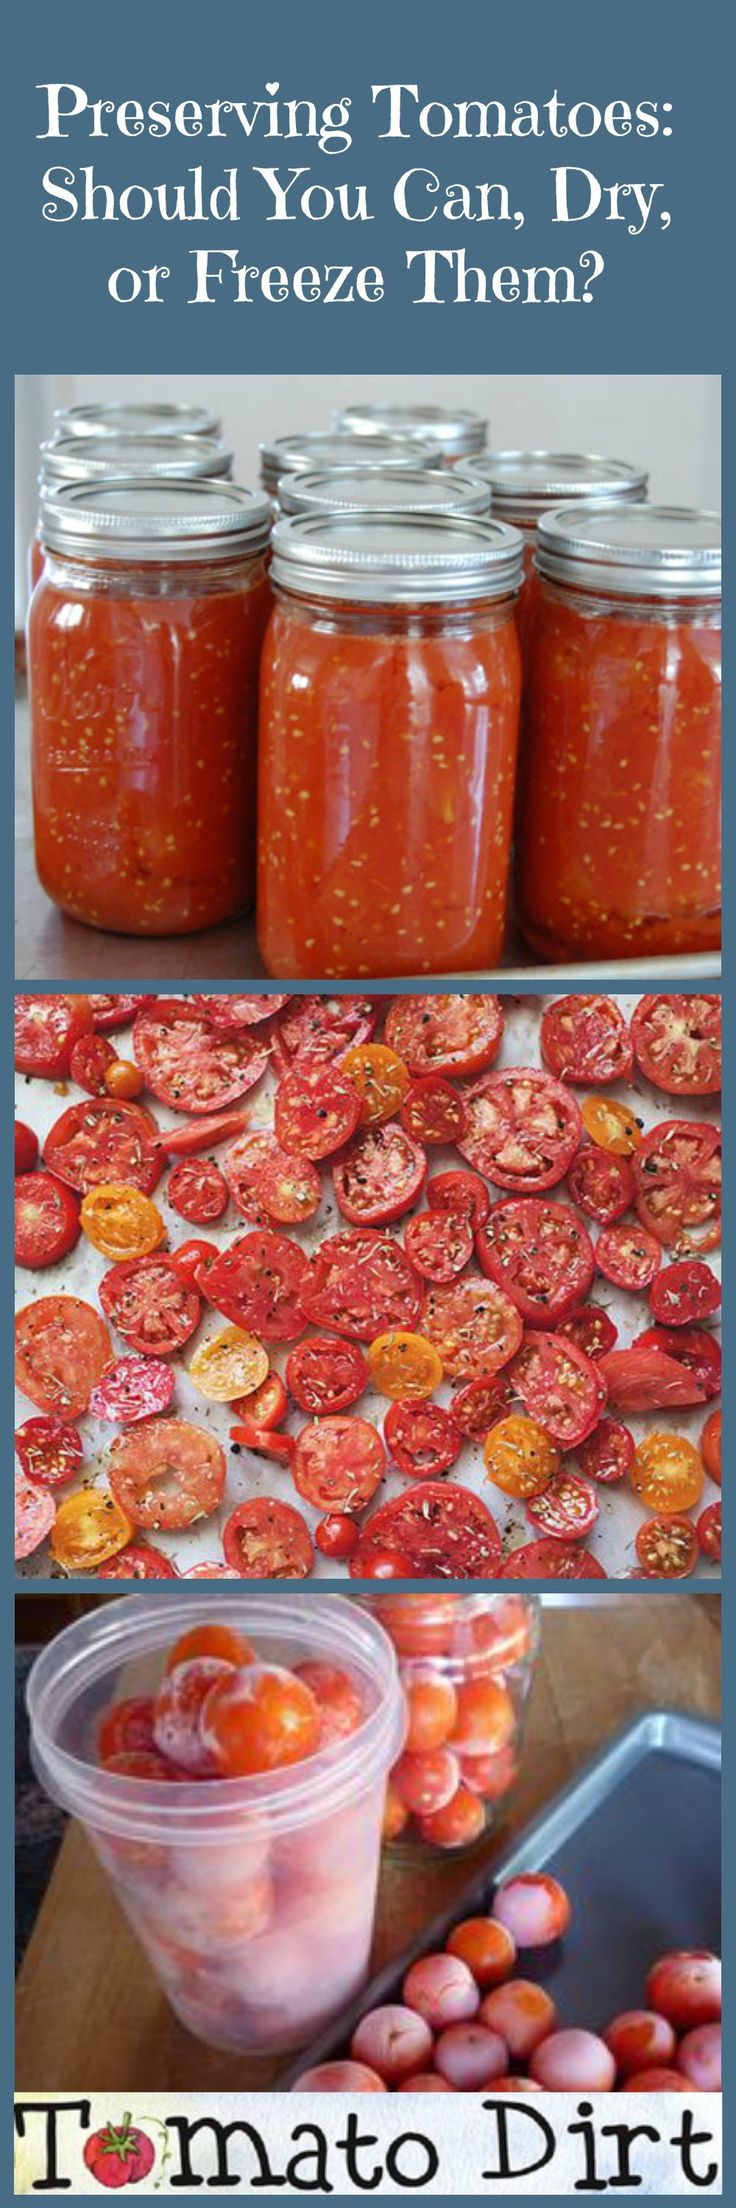 Should you can tomatoes, dry tomatoes, or freeze tomatoes? http://www.tomatodirt.com/preserving-tomatoes.html